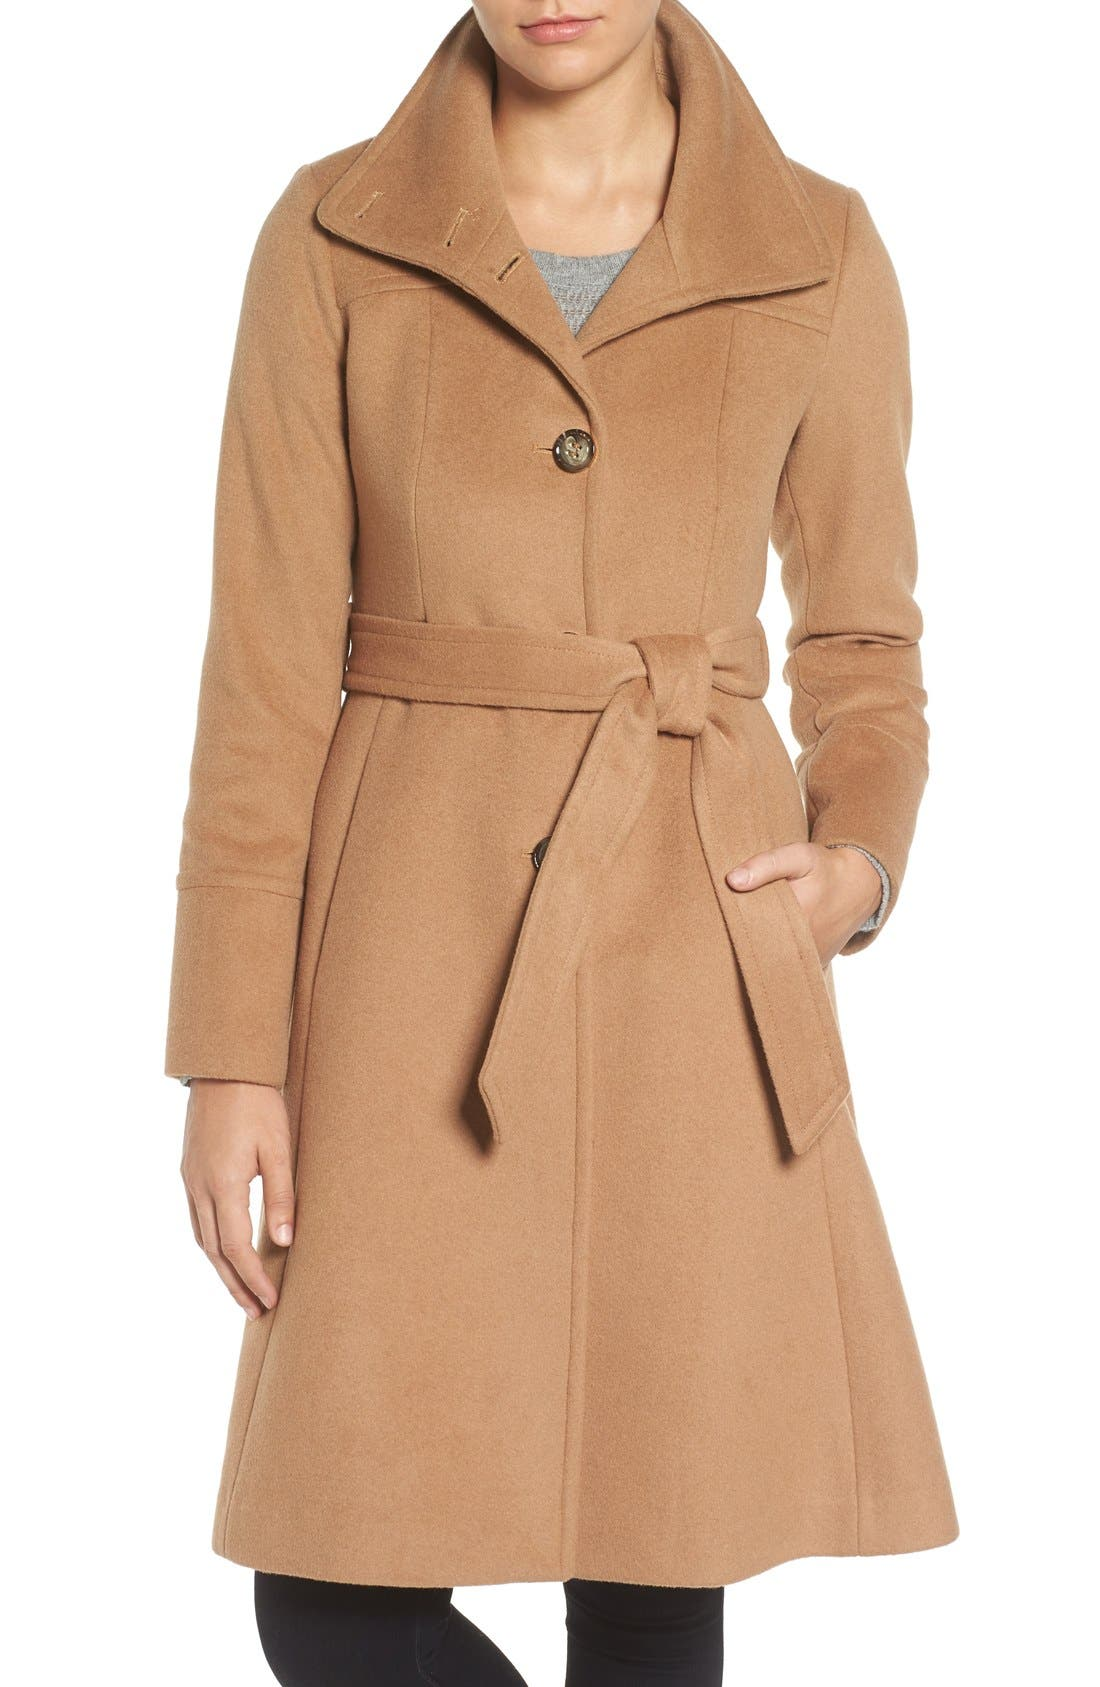 Alternate Image 1 Selected - Eliza J Luxe Wool Blend Belted Long A-Line Coat